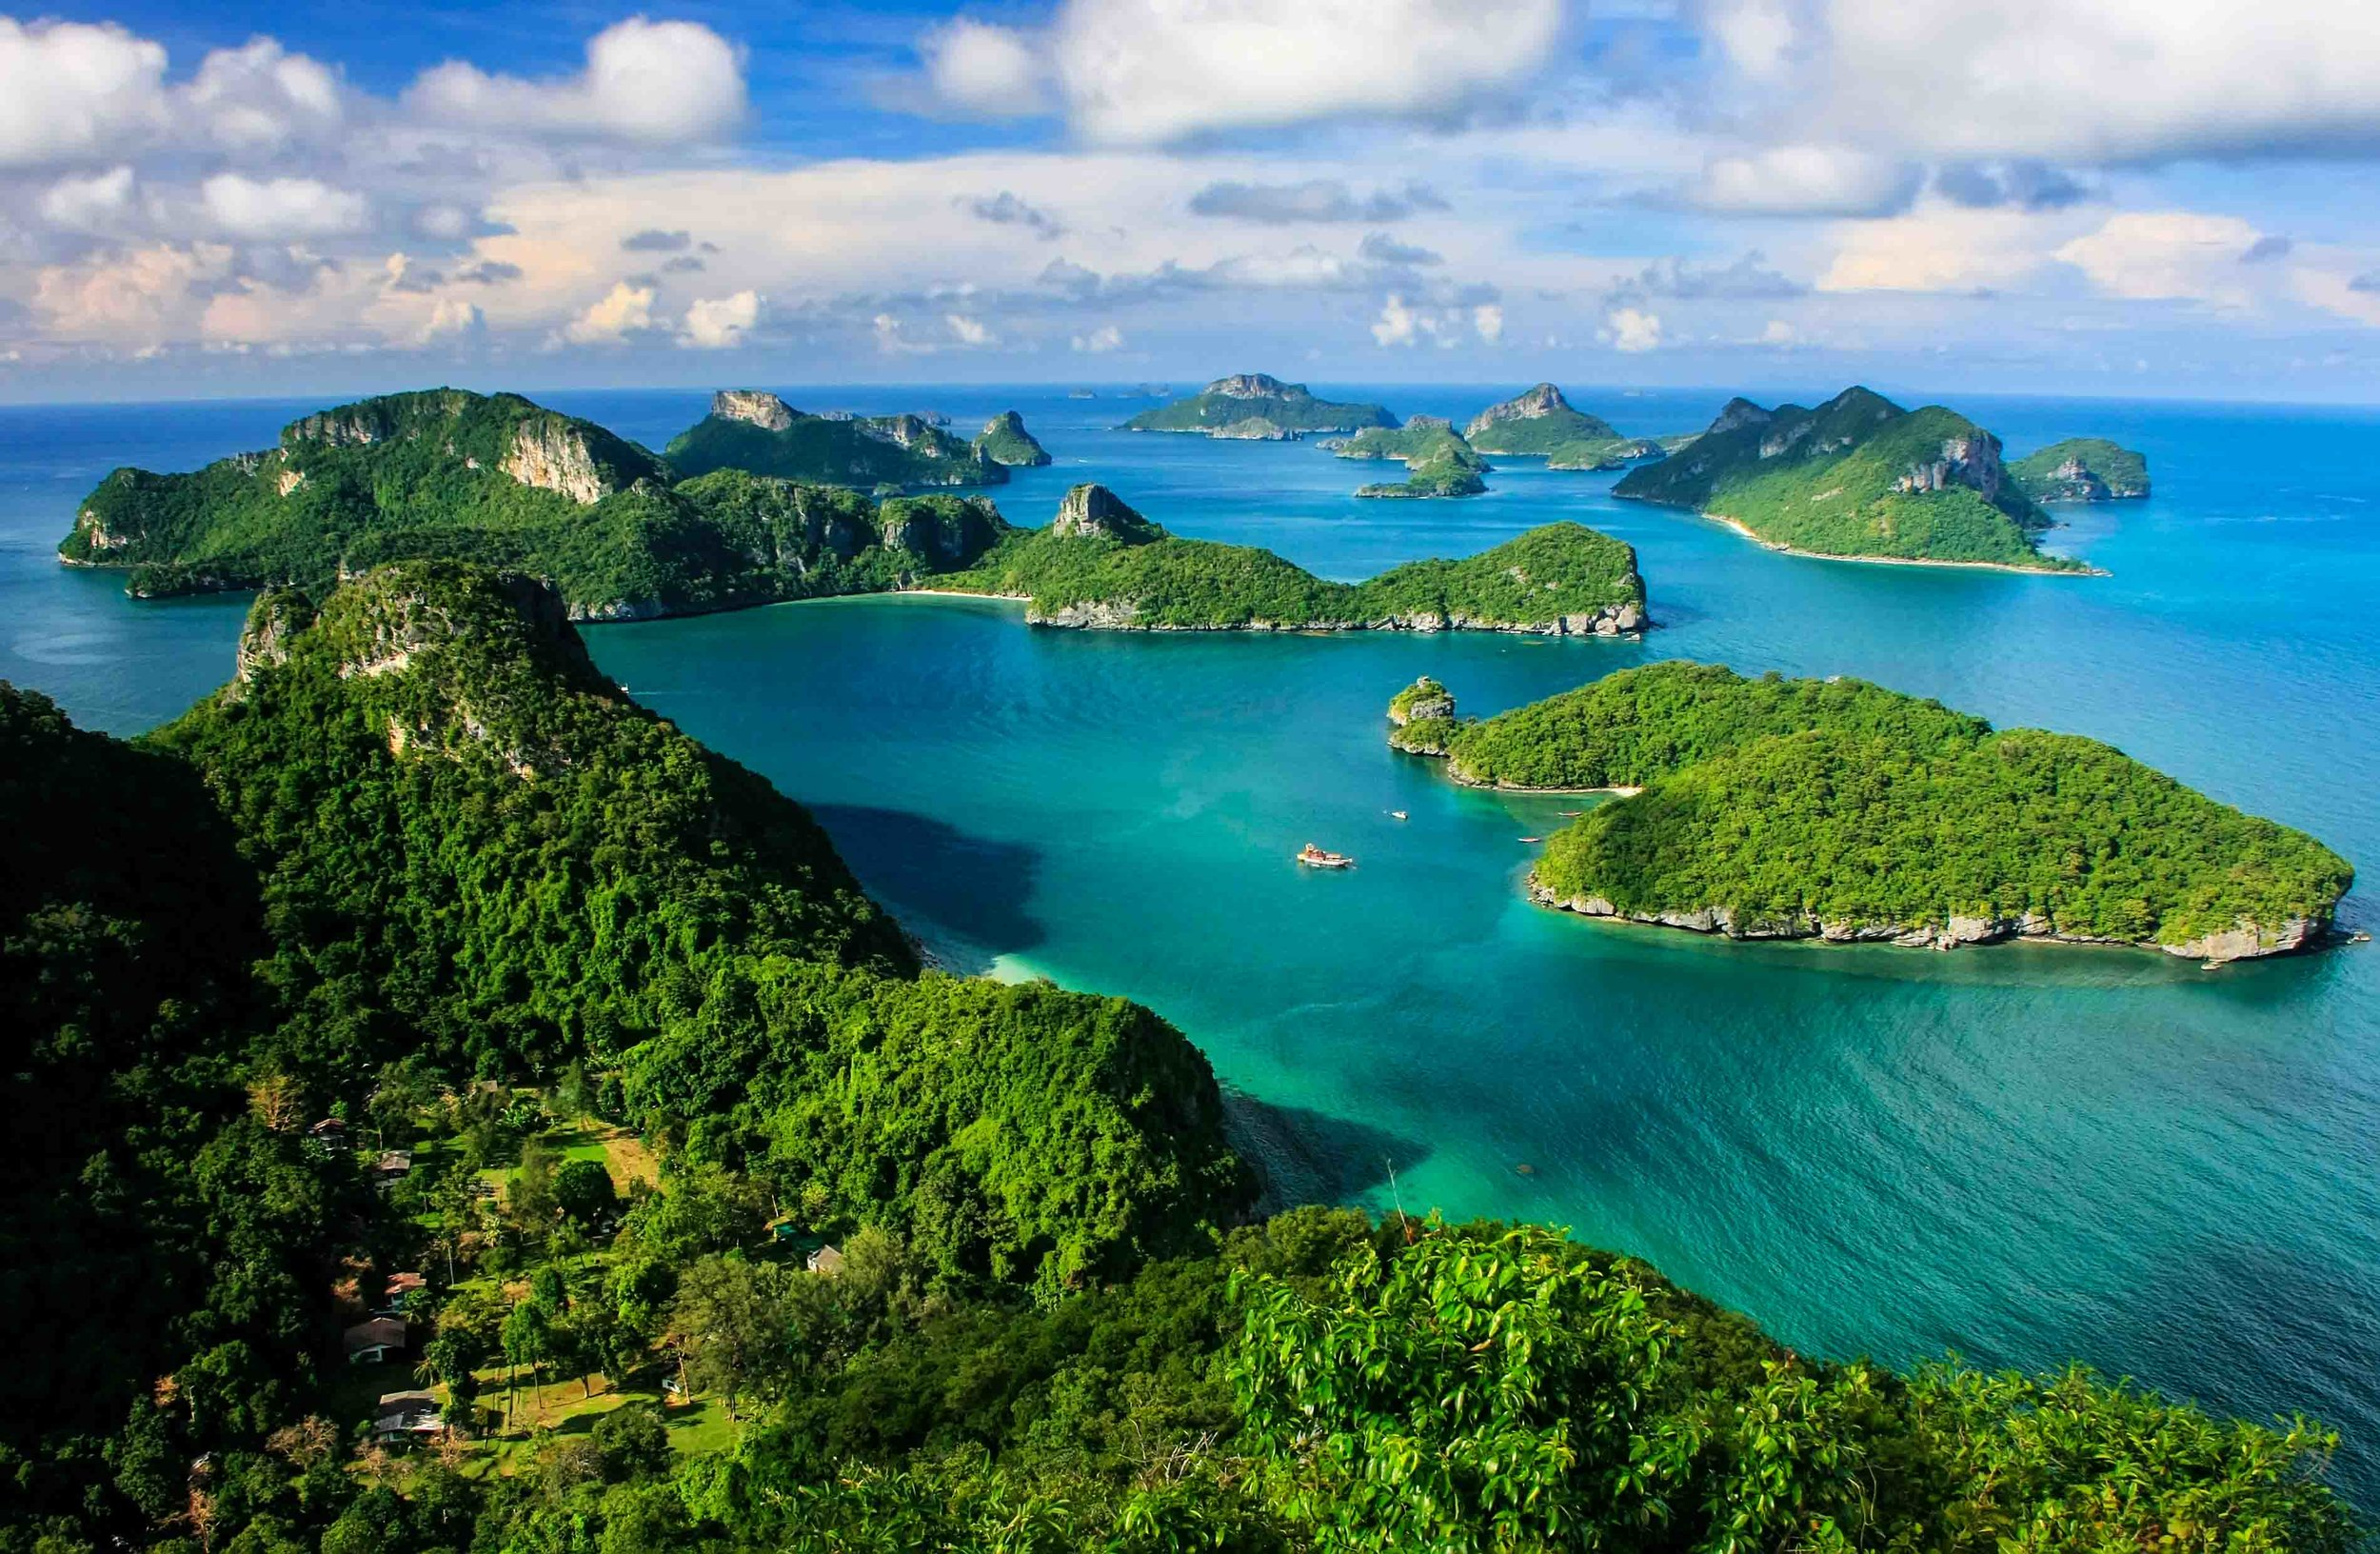 Similan Islands National Park in Thailand